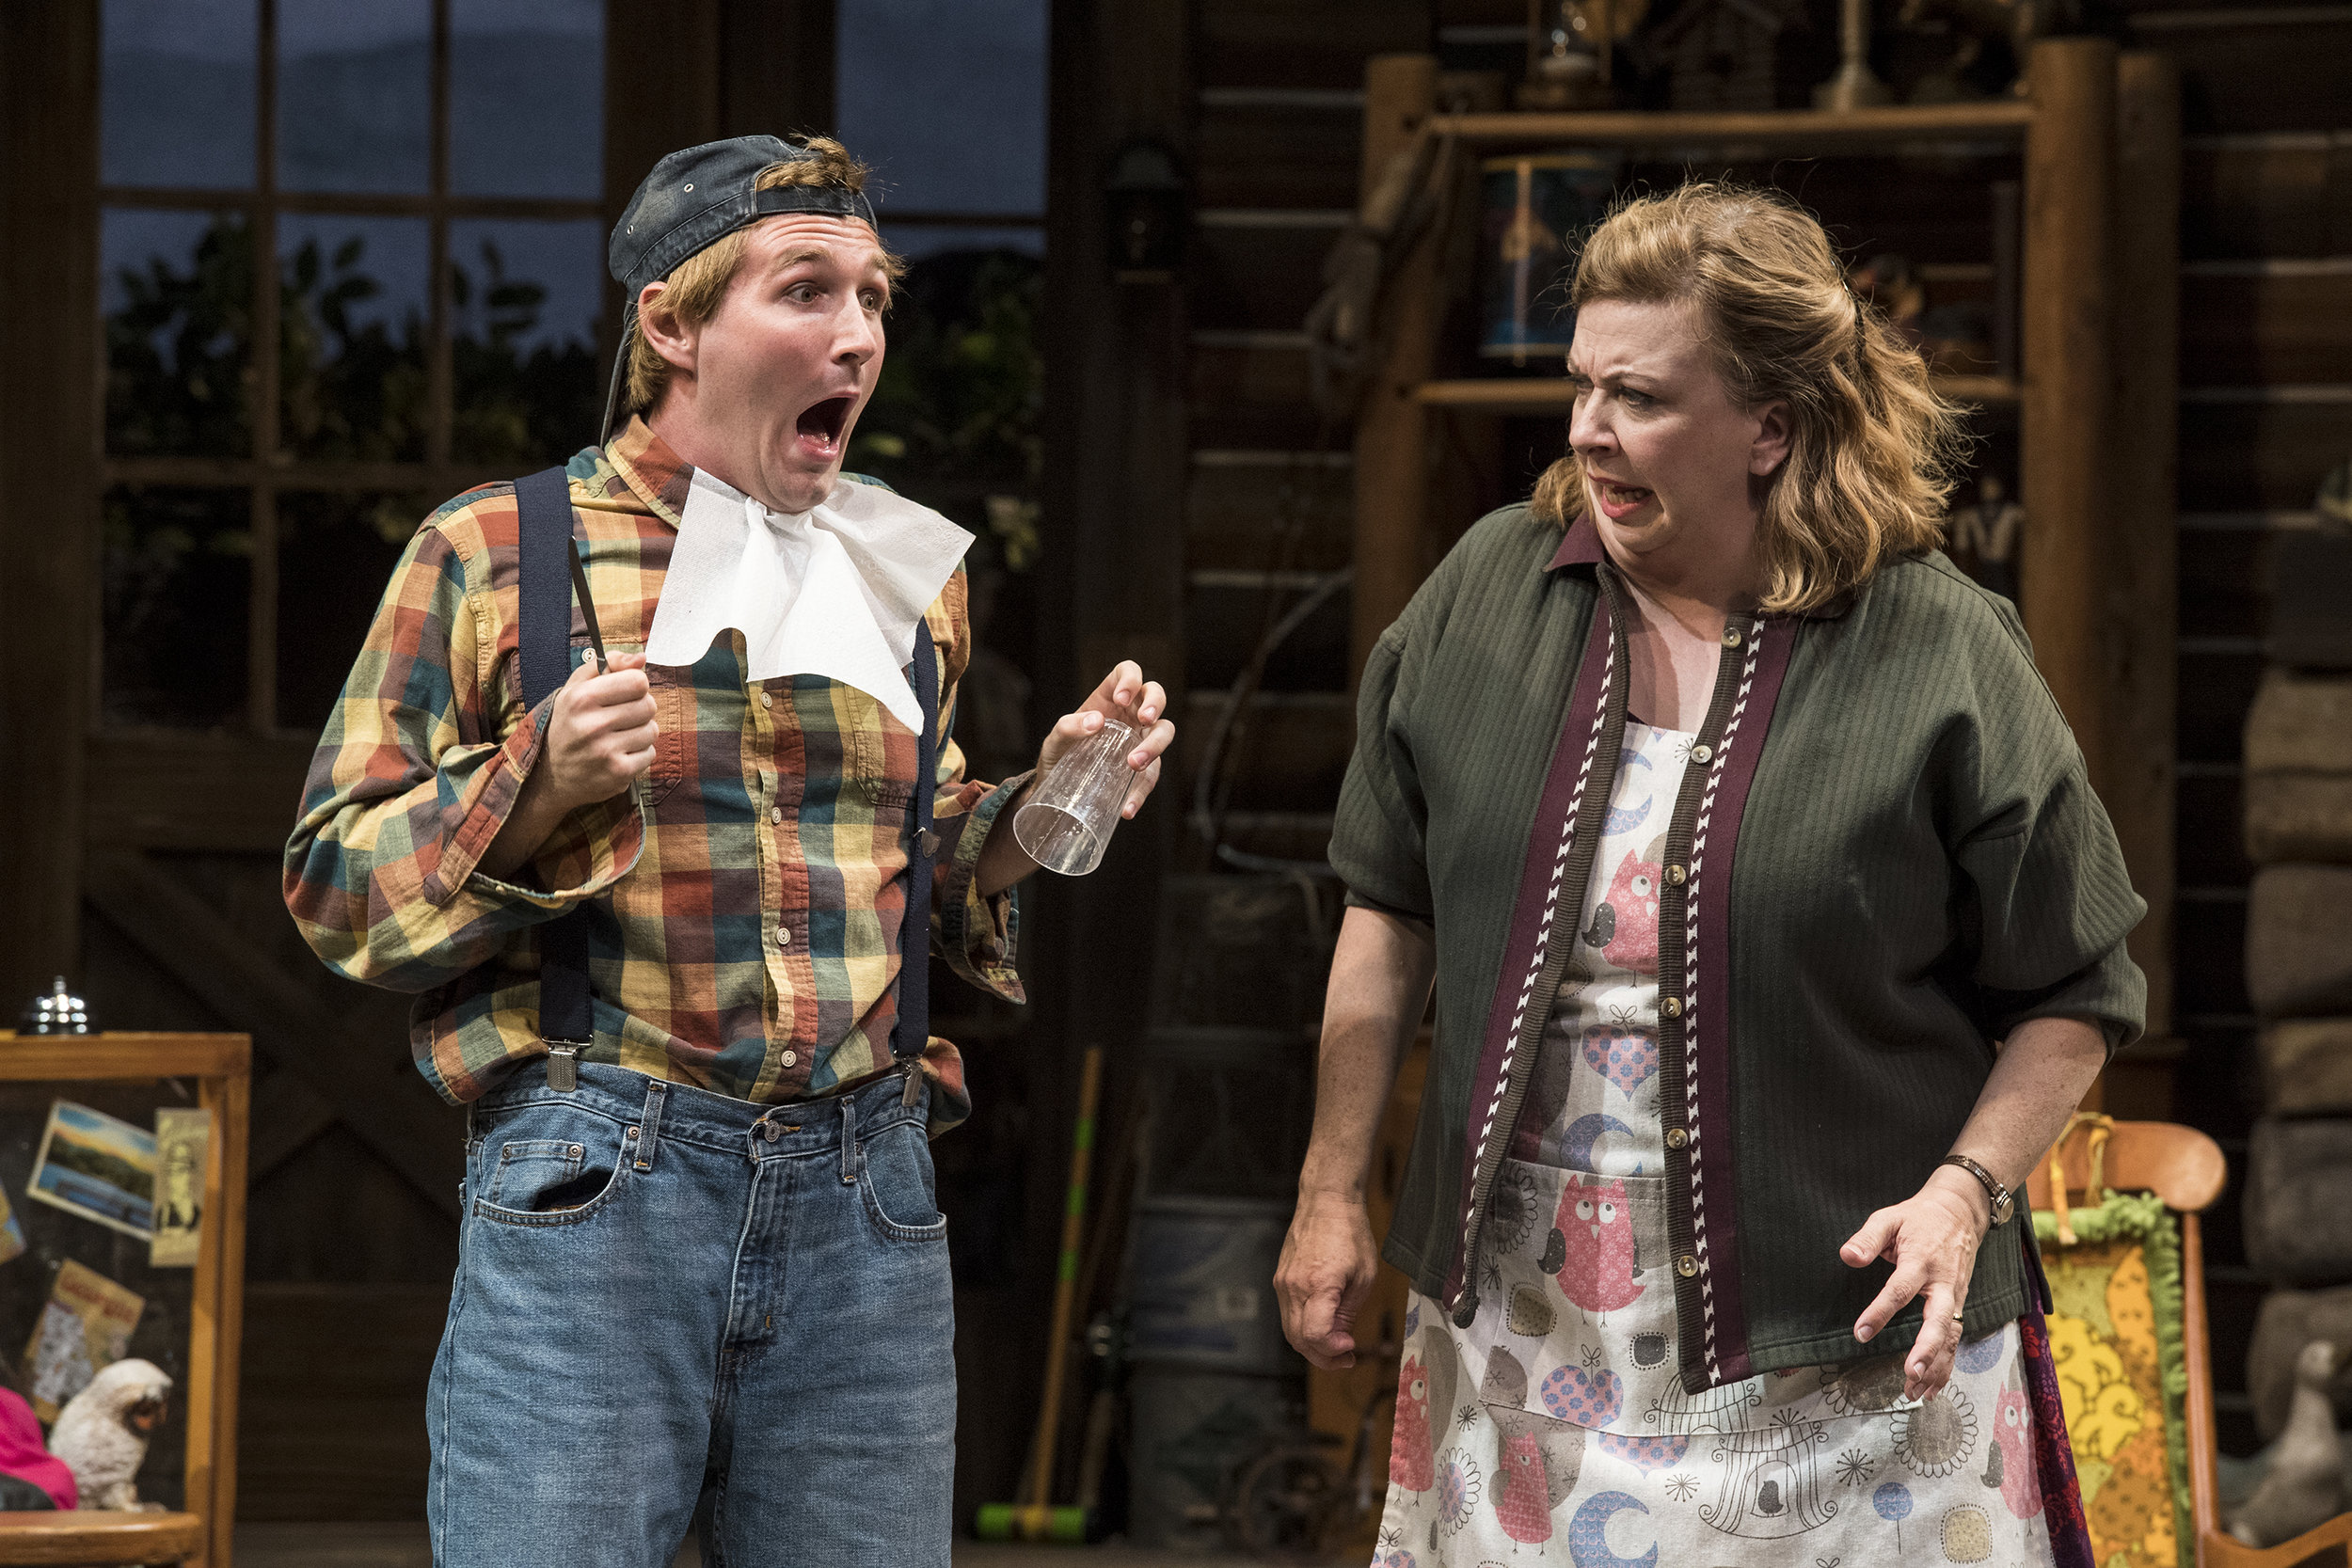 Rob Riordan (left) as Ellard Simms and Colleen Baum as Betty Meeks in the Utah Shakespeare Festival's 2018 production of  The Foreigner.  (Photo by Karl Hugh. Copyright Utah Shakespeare Festival 2018.)